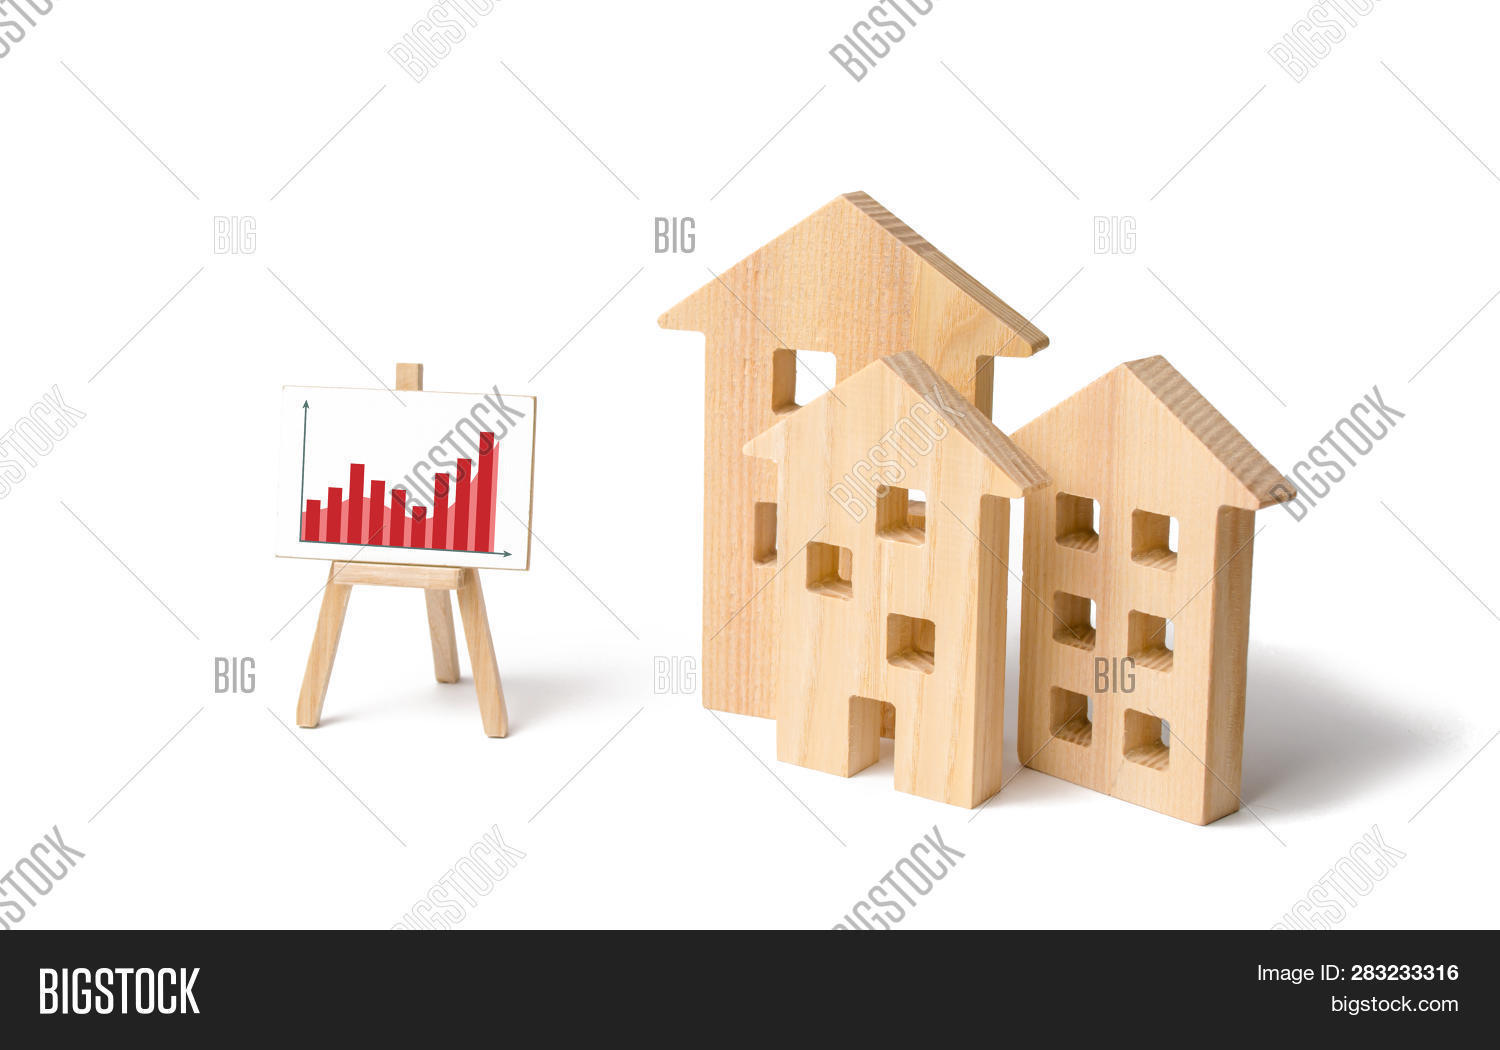 Wooden Houses Stand Image Photo Free Trial Bigstock